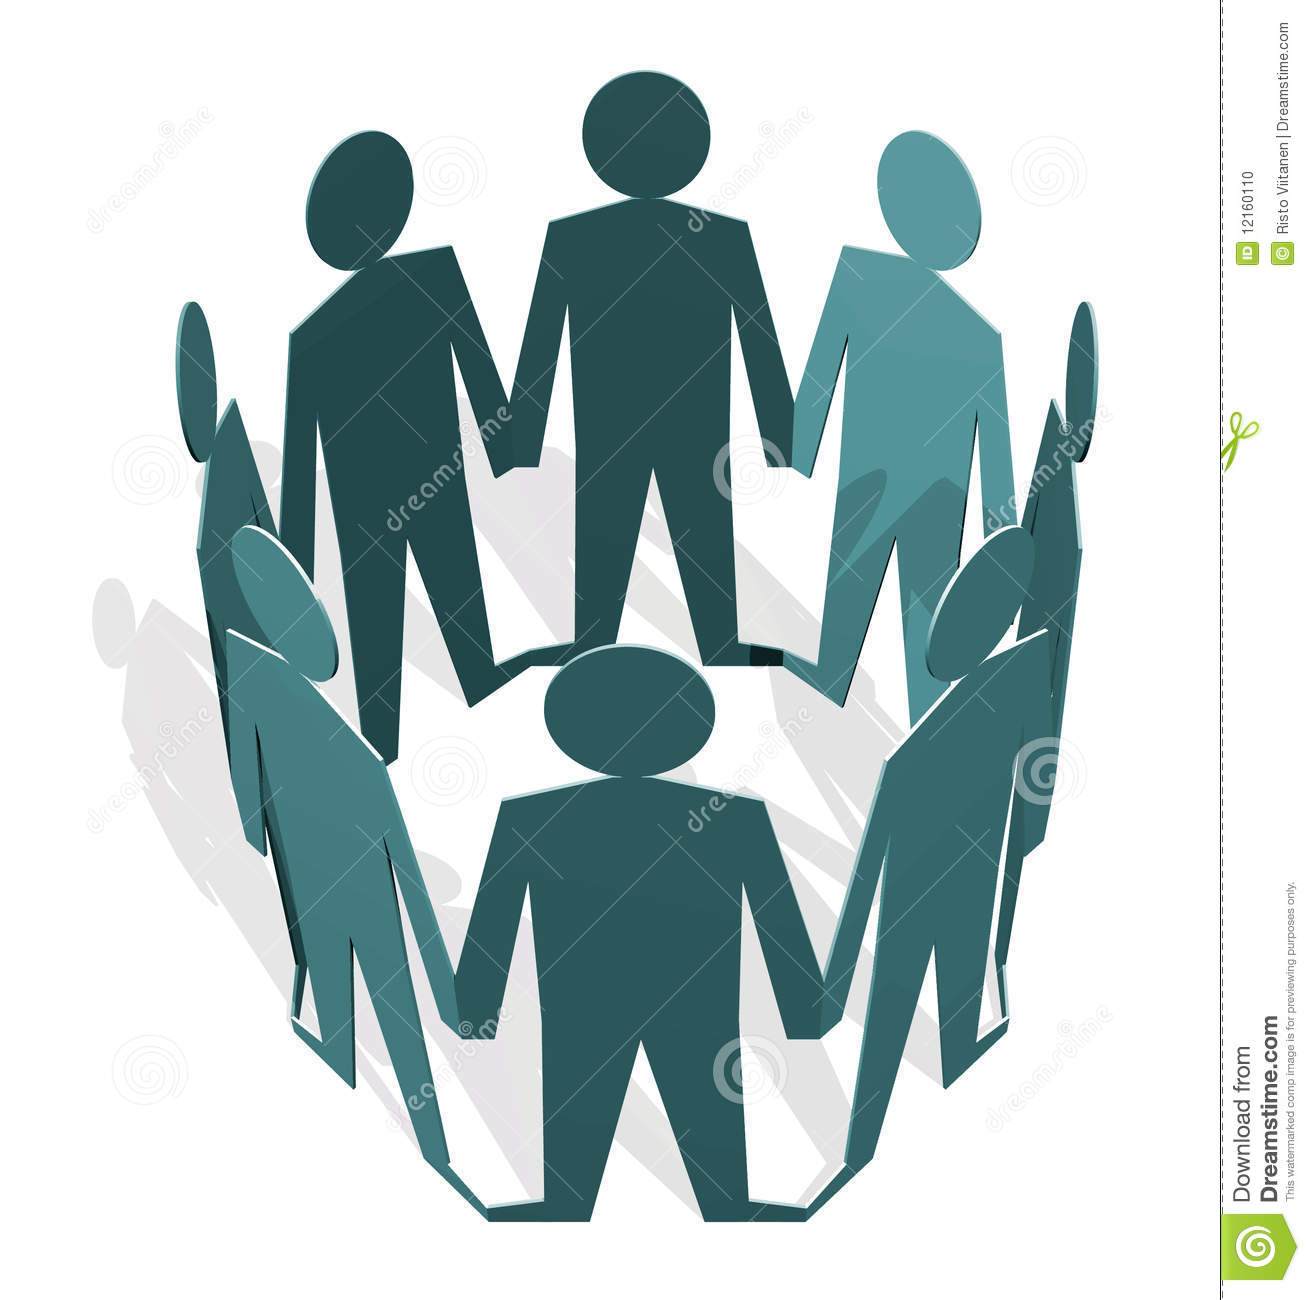 Human figures holding hands in a circle